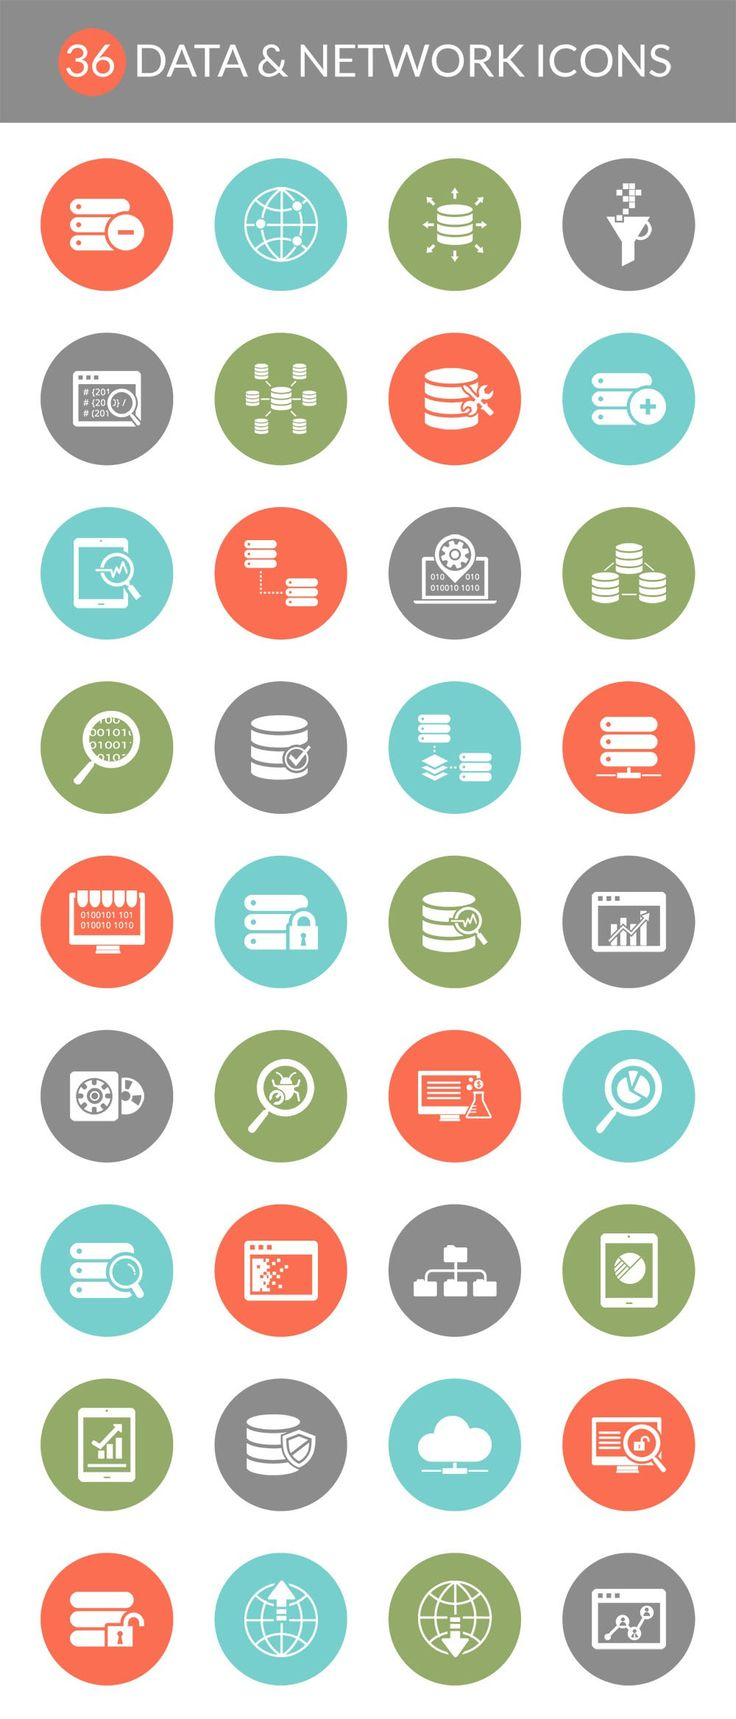 36 Free Data & Network Icons, #AI, #EPS, #Free, #Graphic #Design, #Icon, #PNG, #PSD, #Resource, #Vector